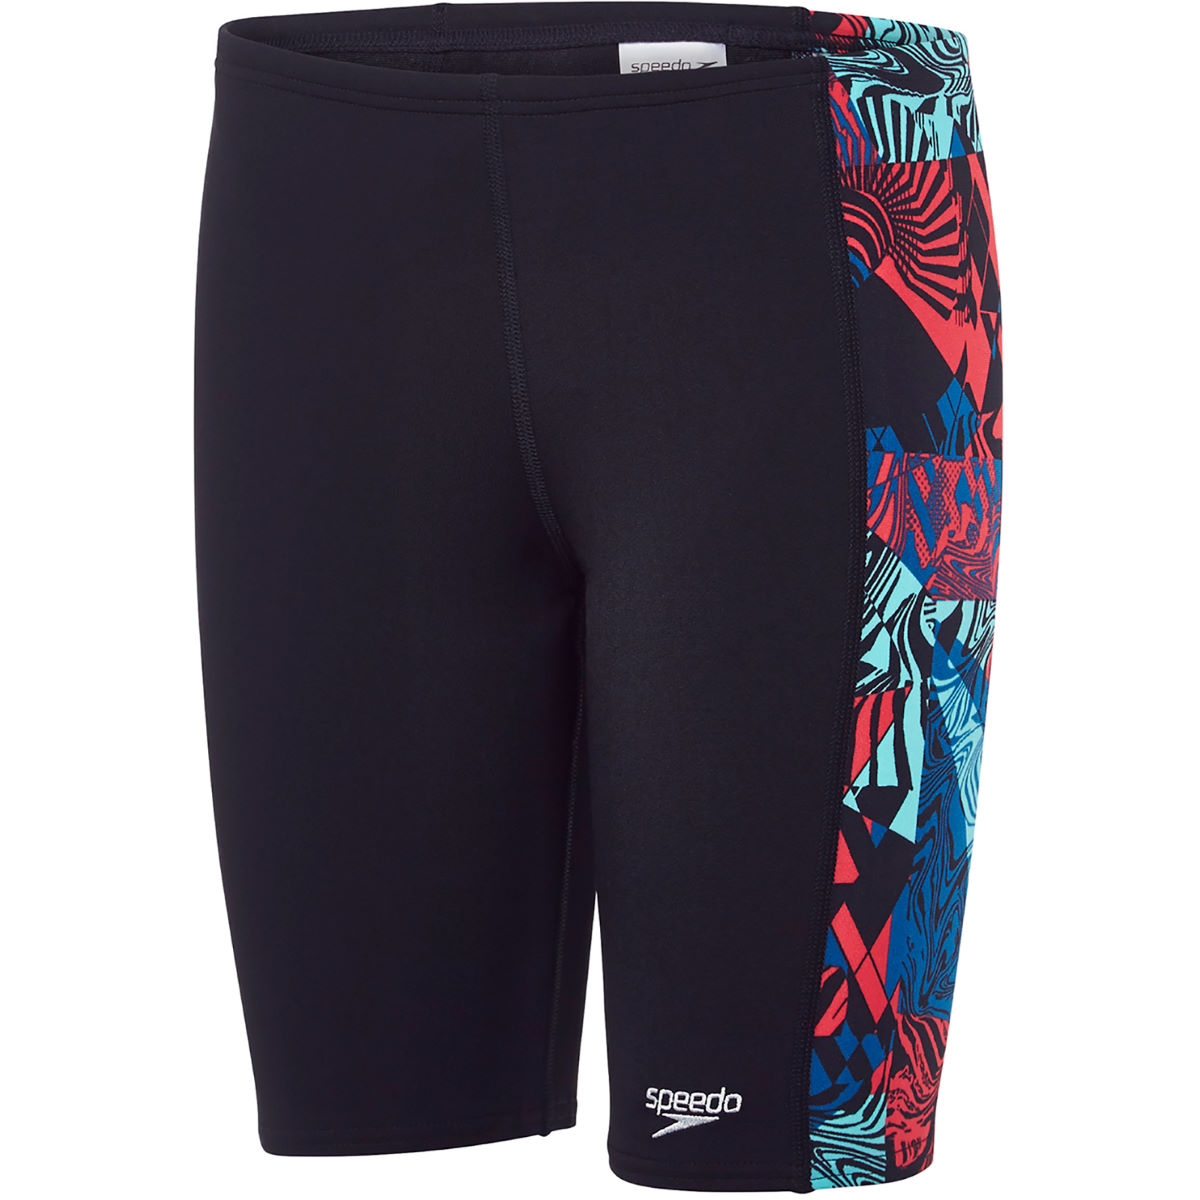 Jammer Garçon Speedo Astro Ignite Allover Panel - 24